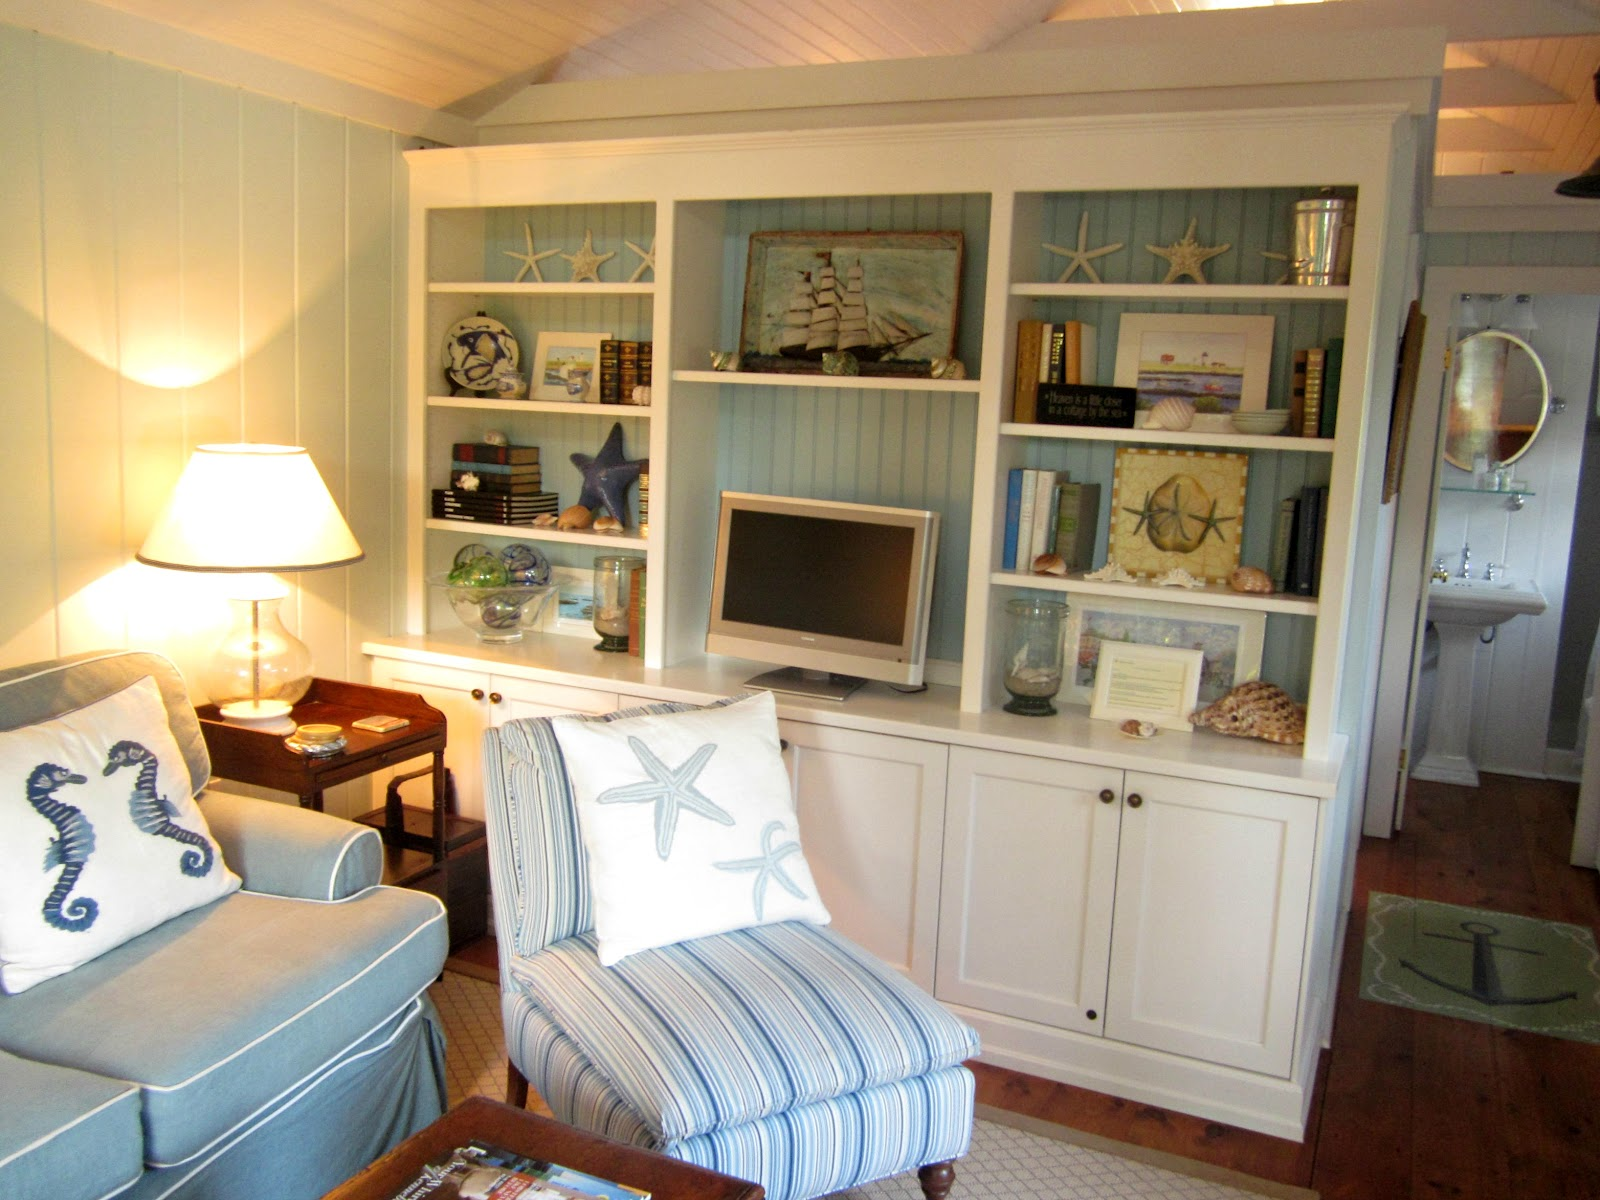 summer bedroom magazine in of kitchen plans spring country best fallwinter tags homes small modular photos bungalow curtains maine r style meredith for house cottage size houses full tag living room design home